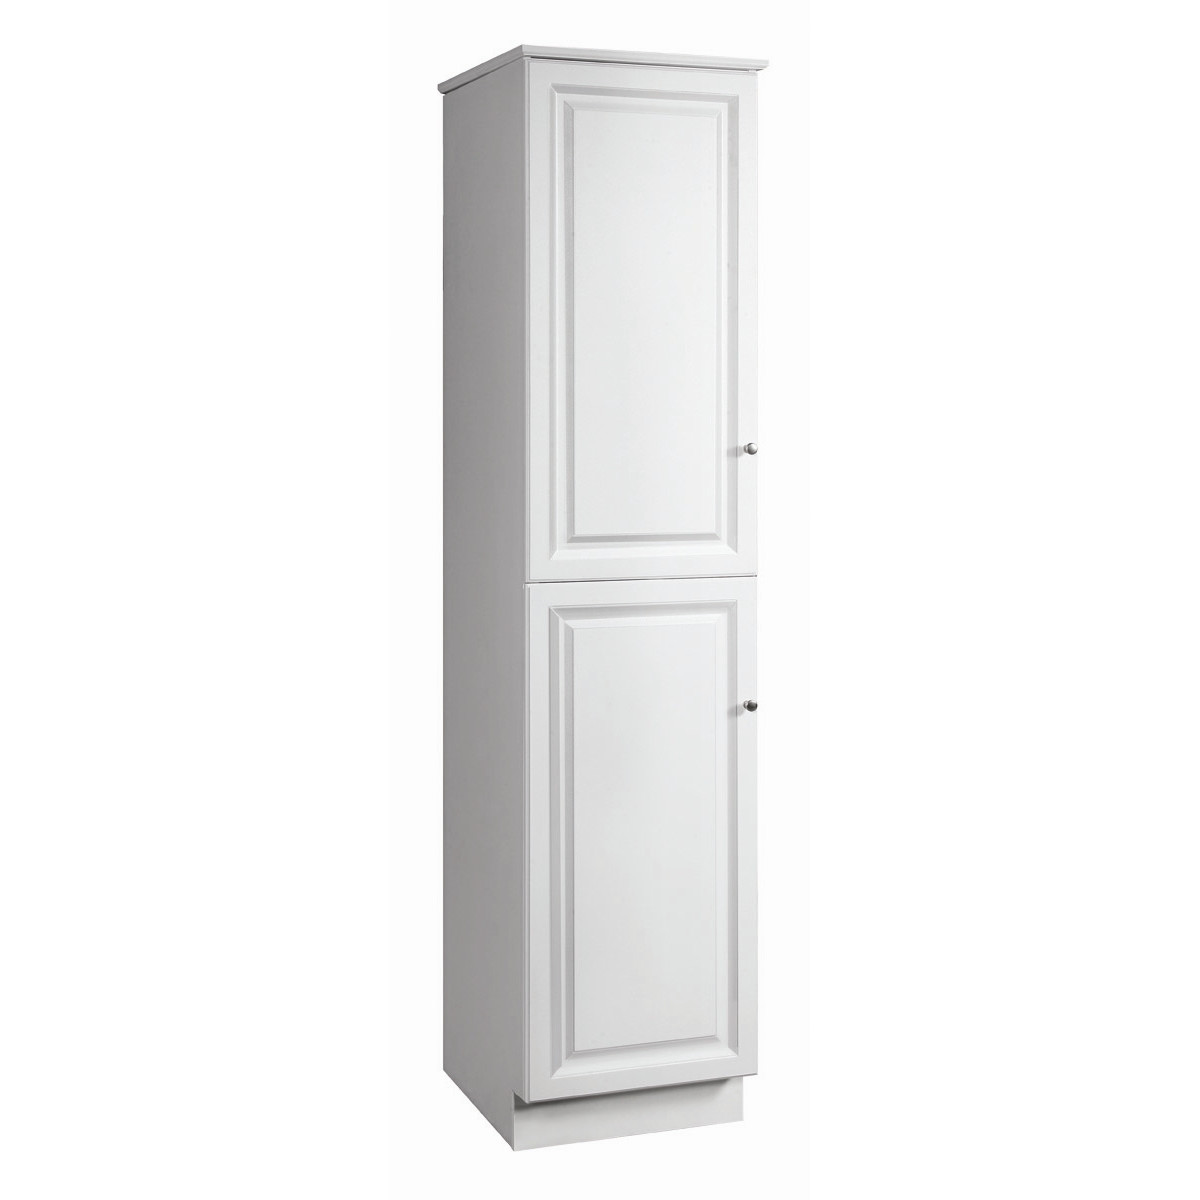 Best Free Standing Linen Closet HomesFeed